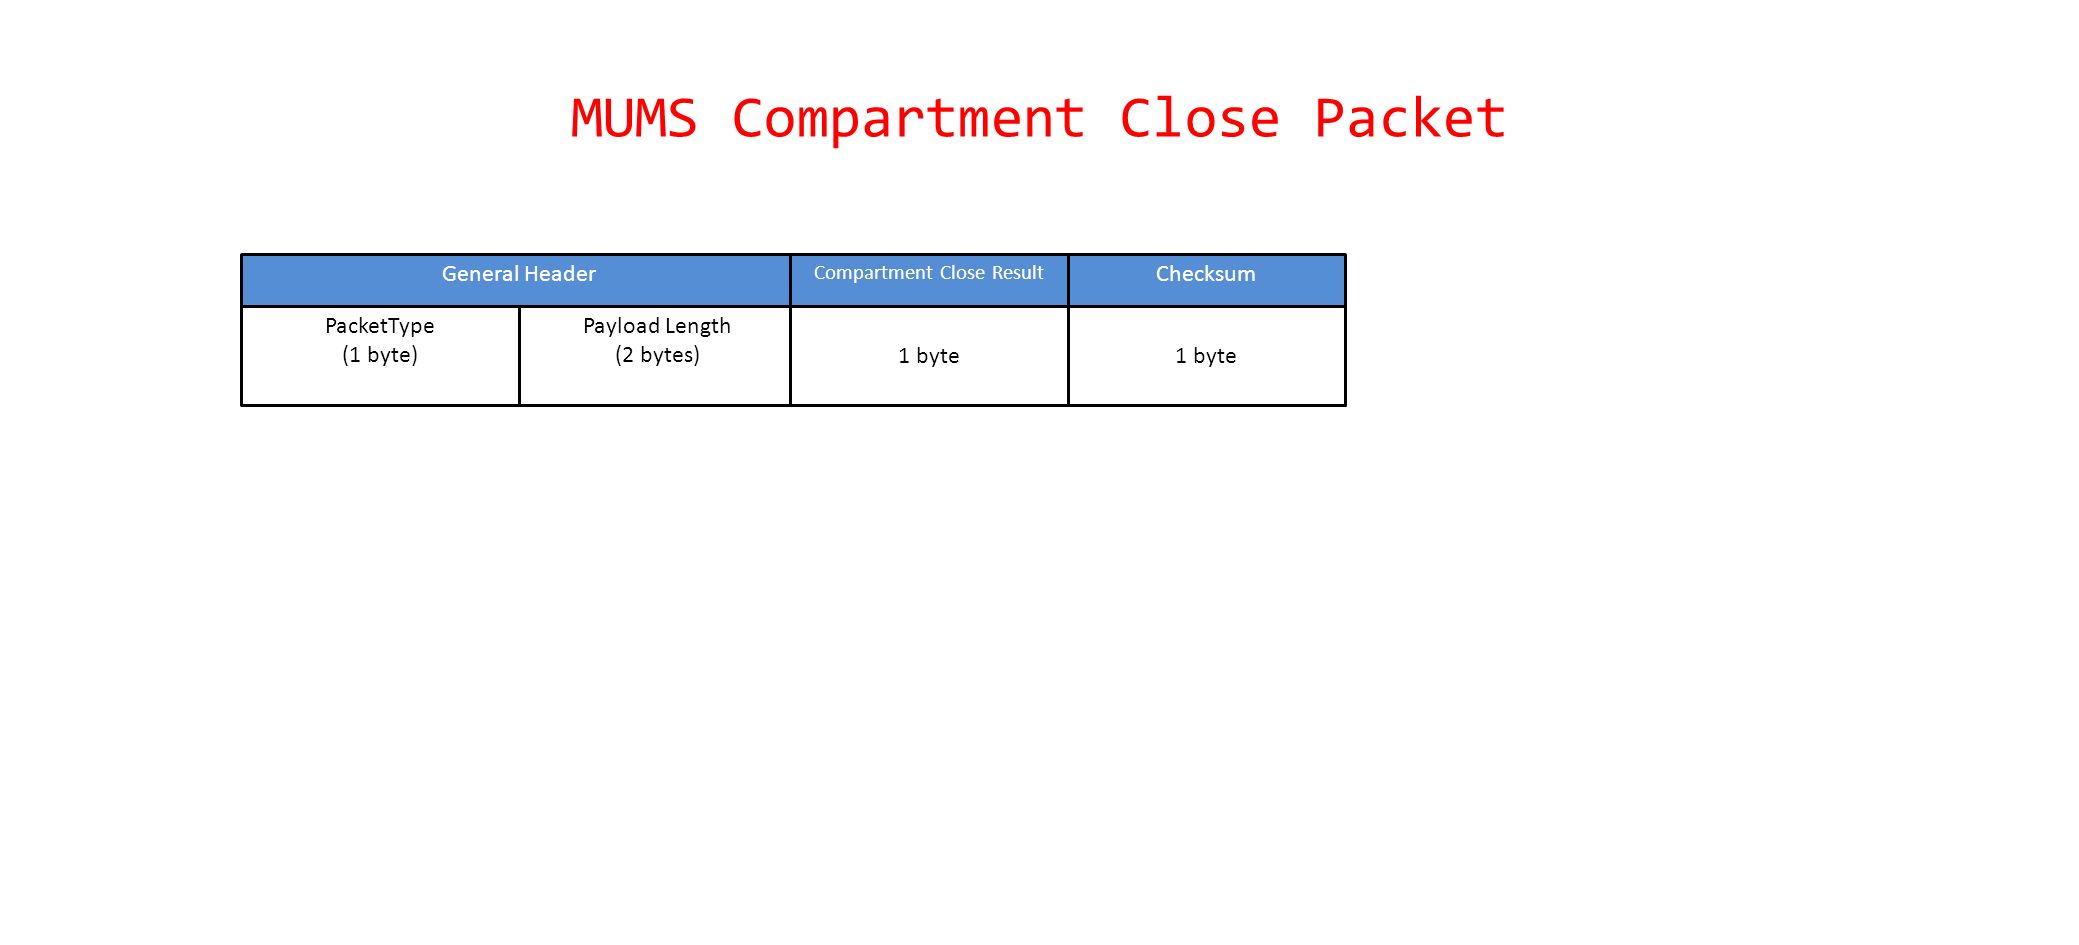 MUMS Compartment Close Packet PacketType (1 byte) Payload Length (2 bytes) General Header 1 byte Compartment Close Result 1 byte Checksum